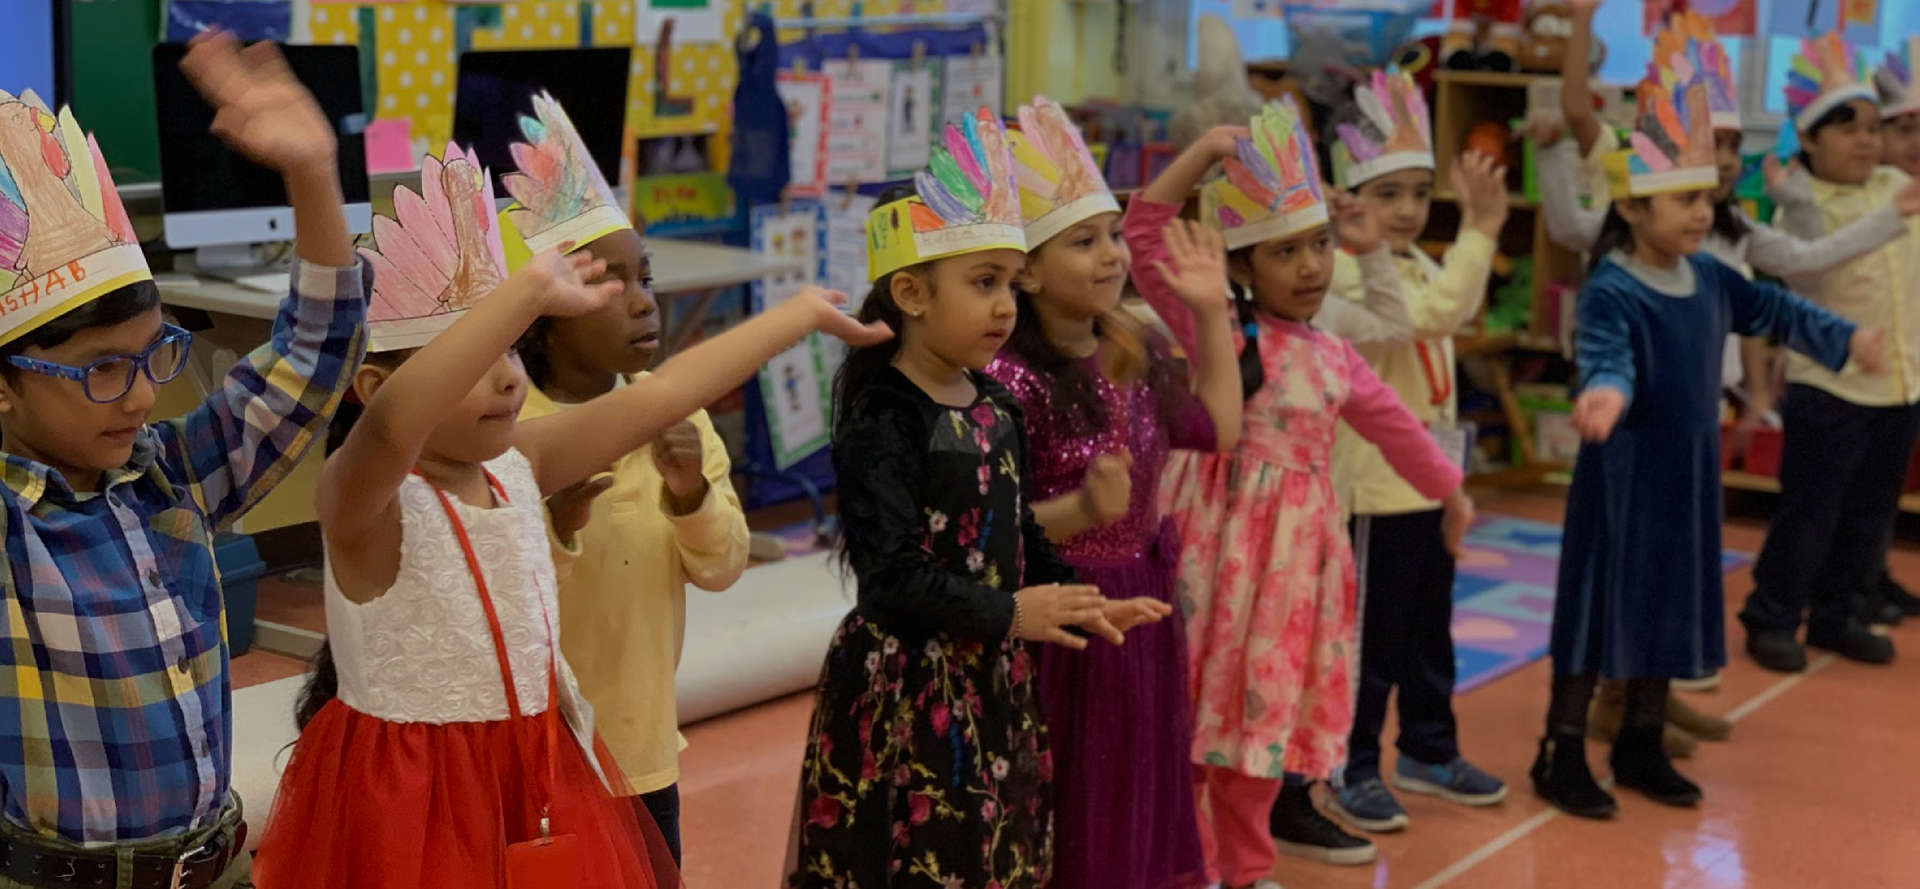 Students wearing paper headdresses dancing in class